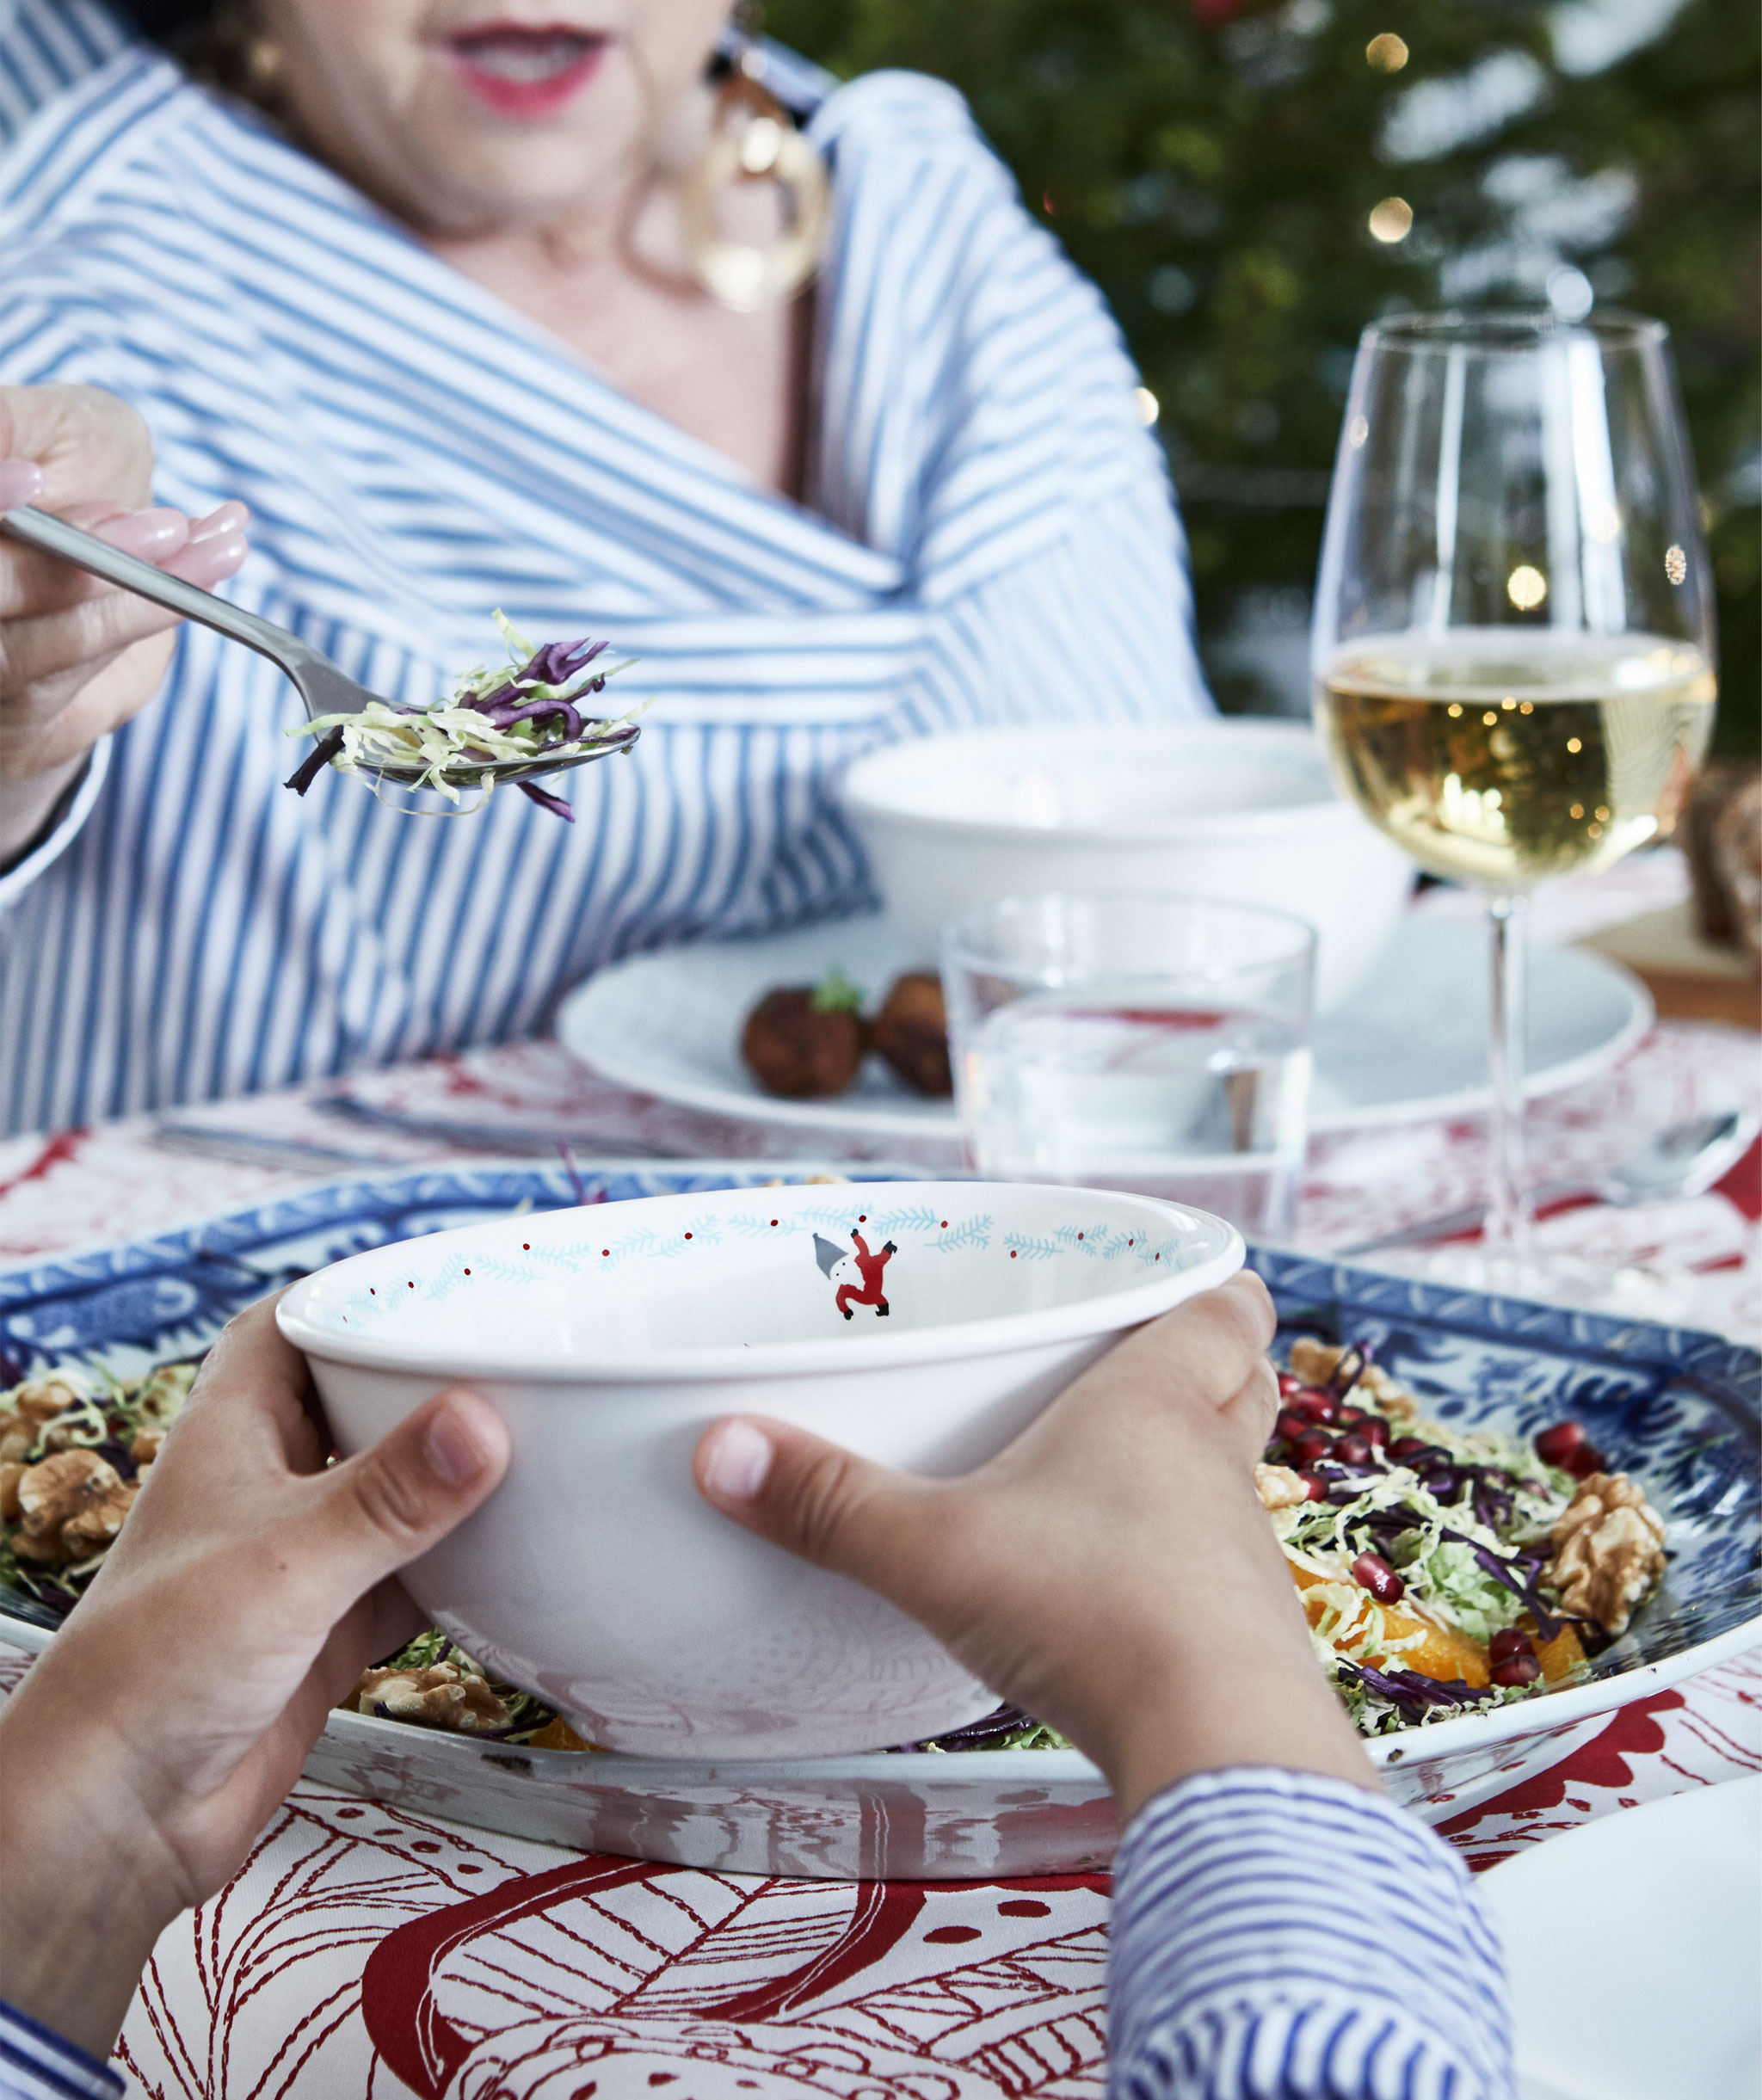 Section of holiday-set table, including filled plates and glasses. An older person serves food into a bowl held by a child.